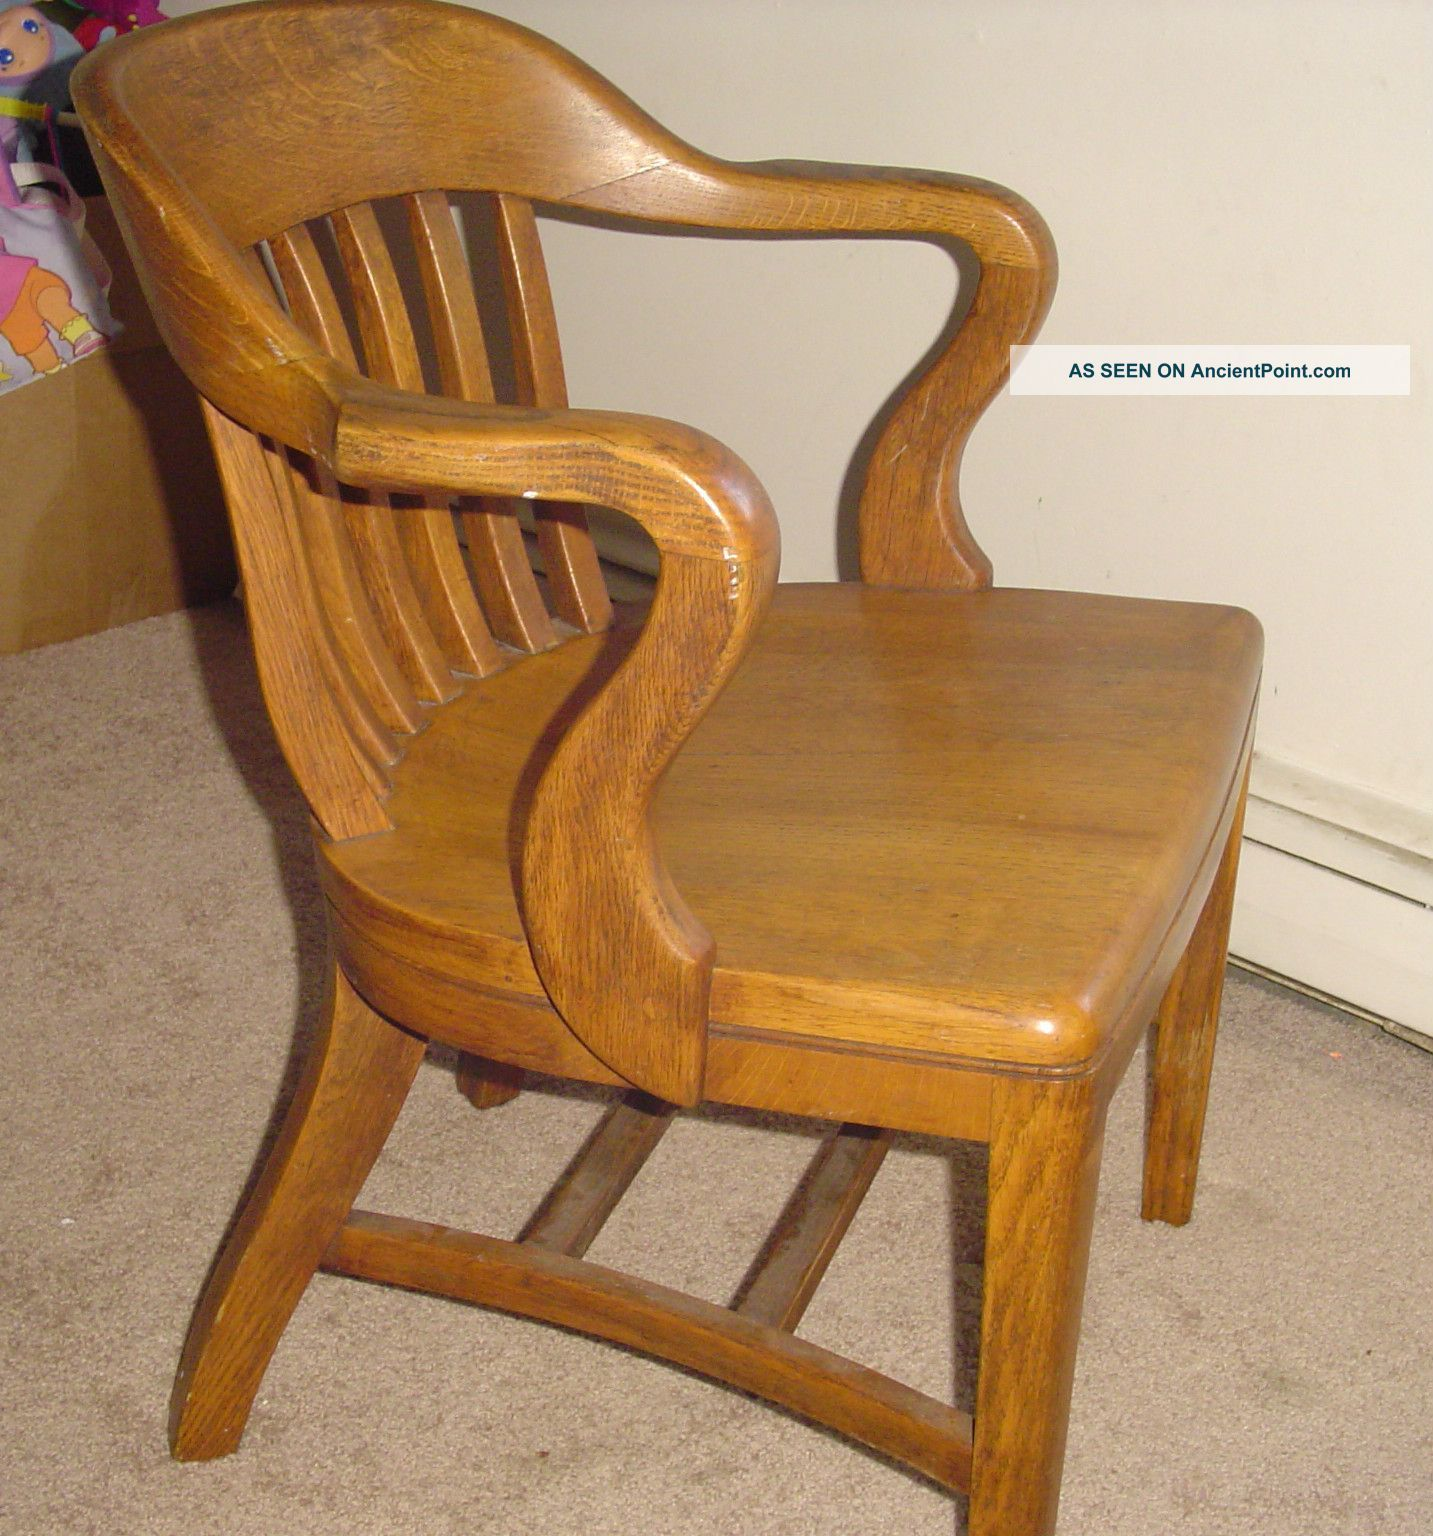 Antique wooden chairs with arms - Antique Oak Office Jury Court Bankers Chair Vintage 1900 1950 Photo